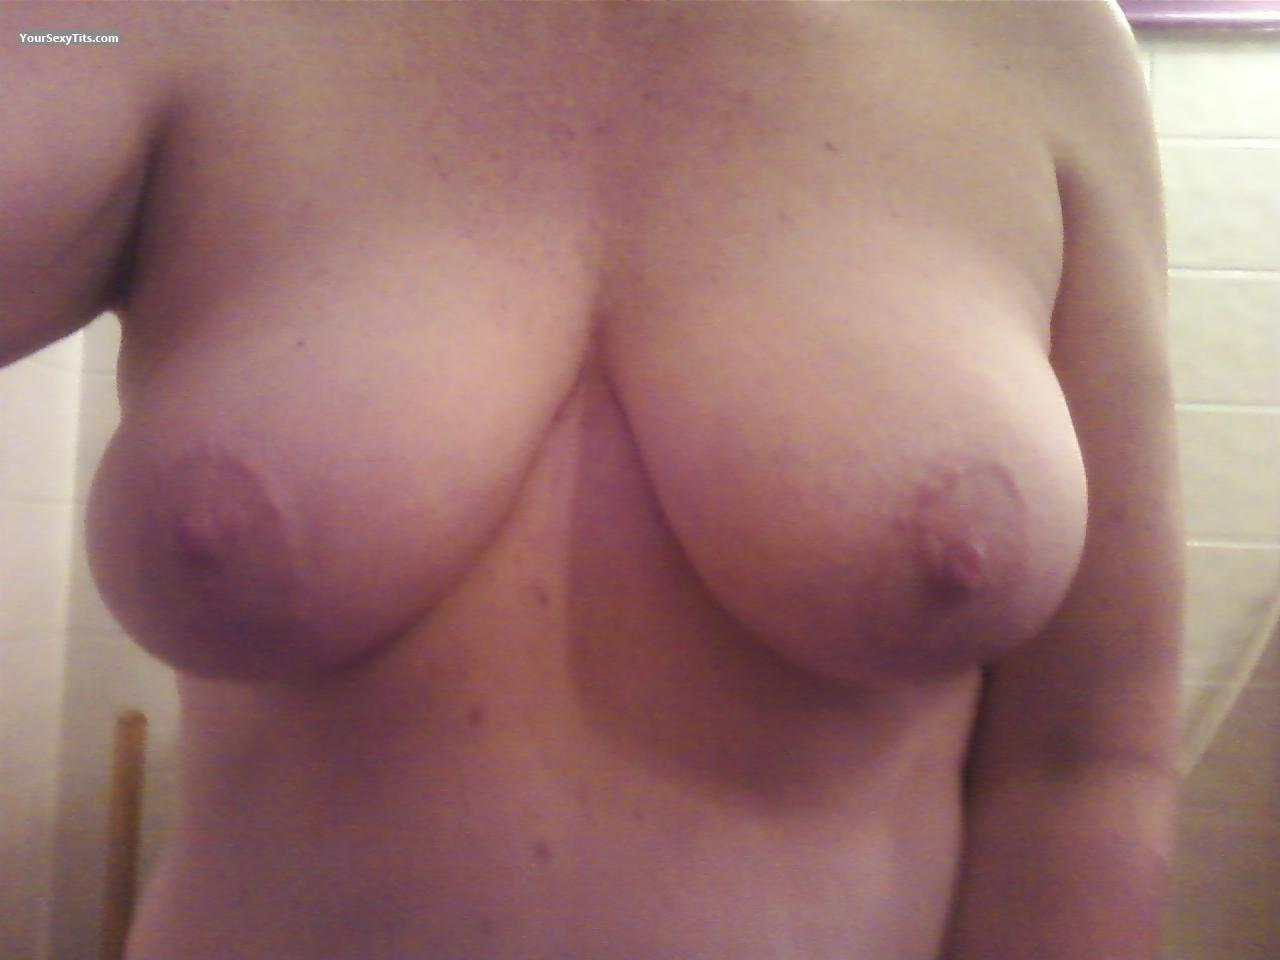 Big Tits Of A Friend Selfie by Tracy